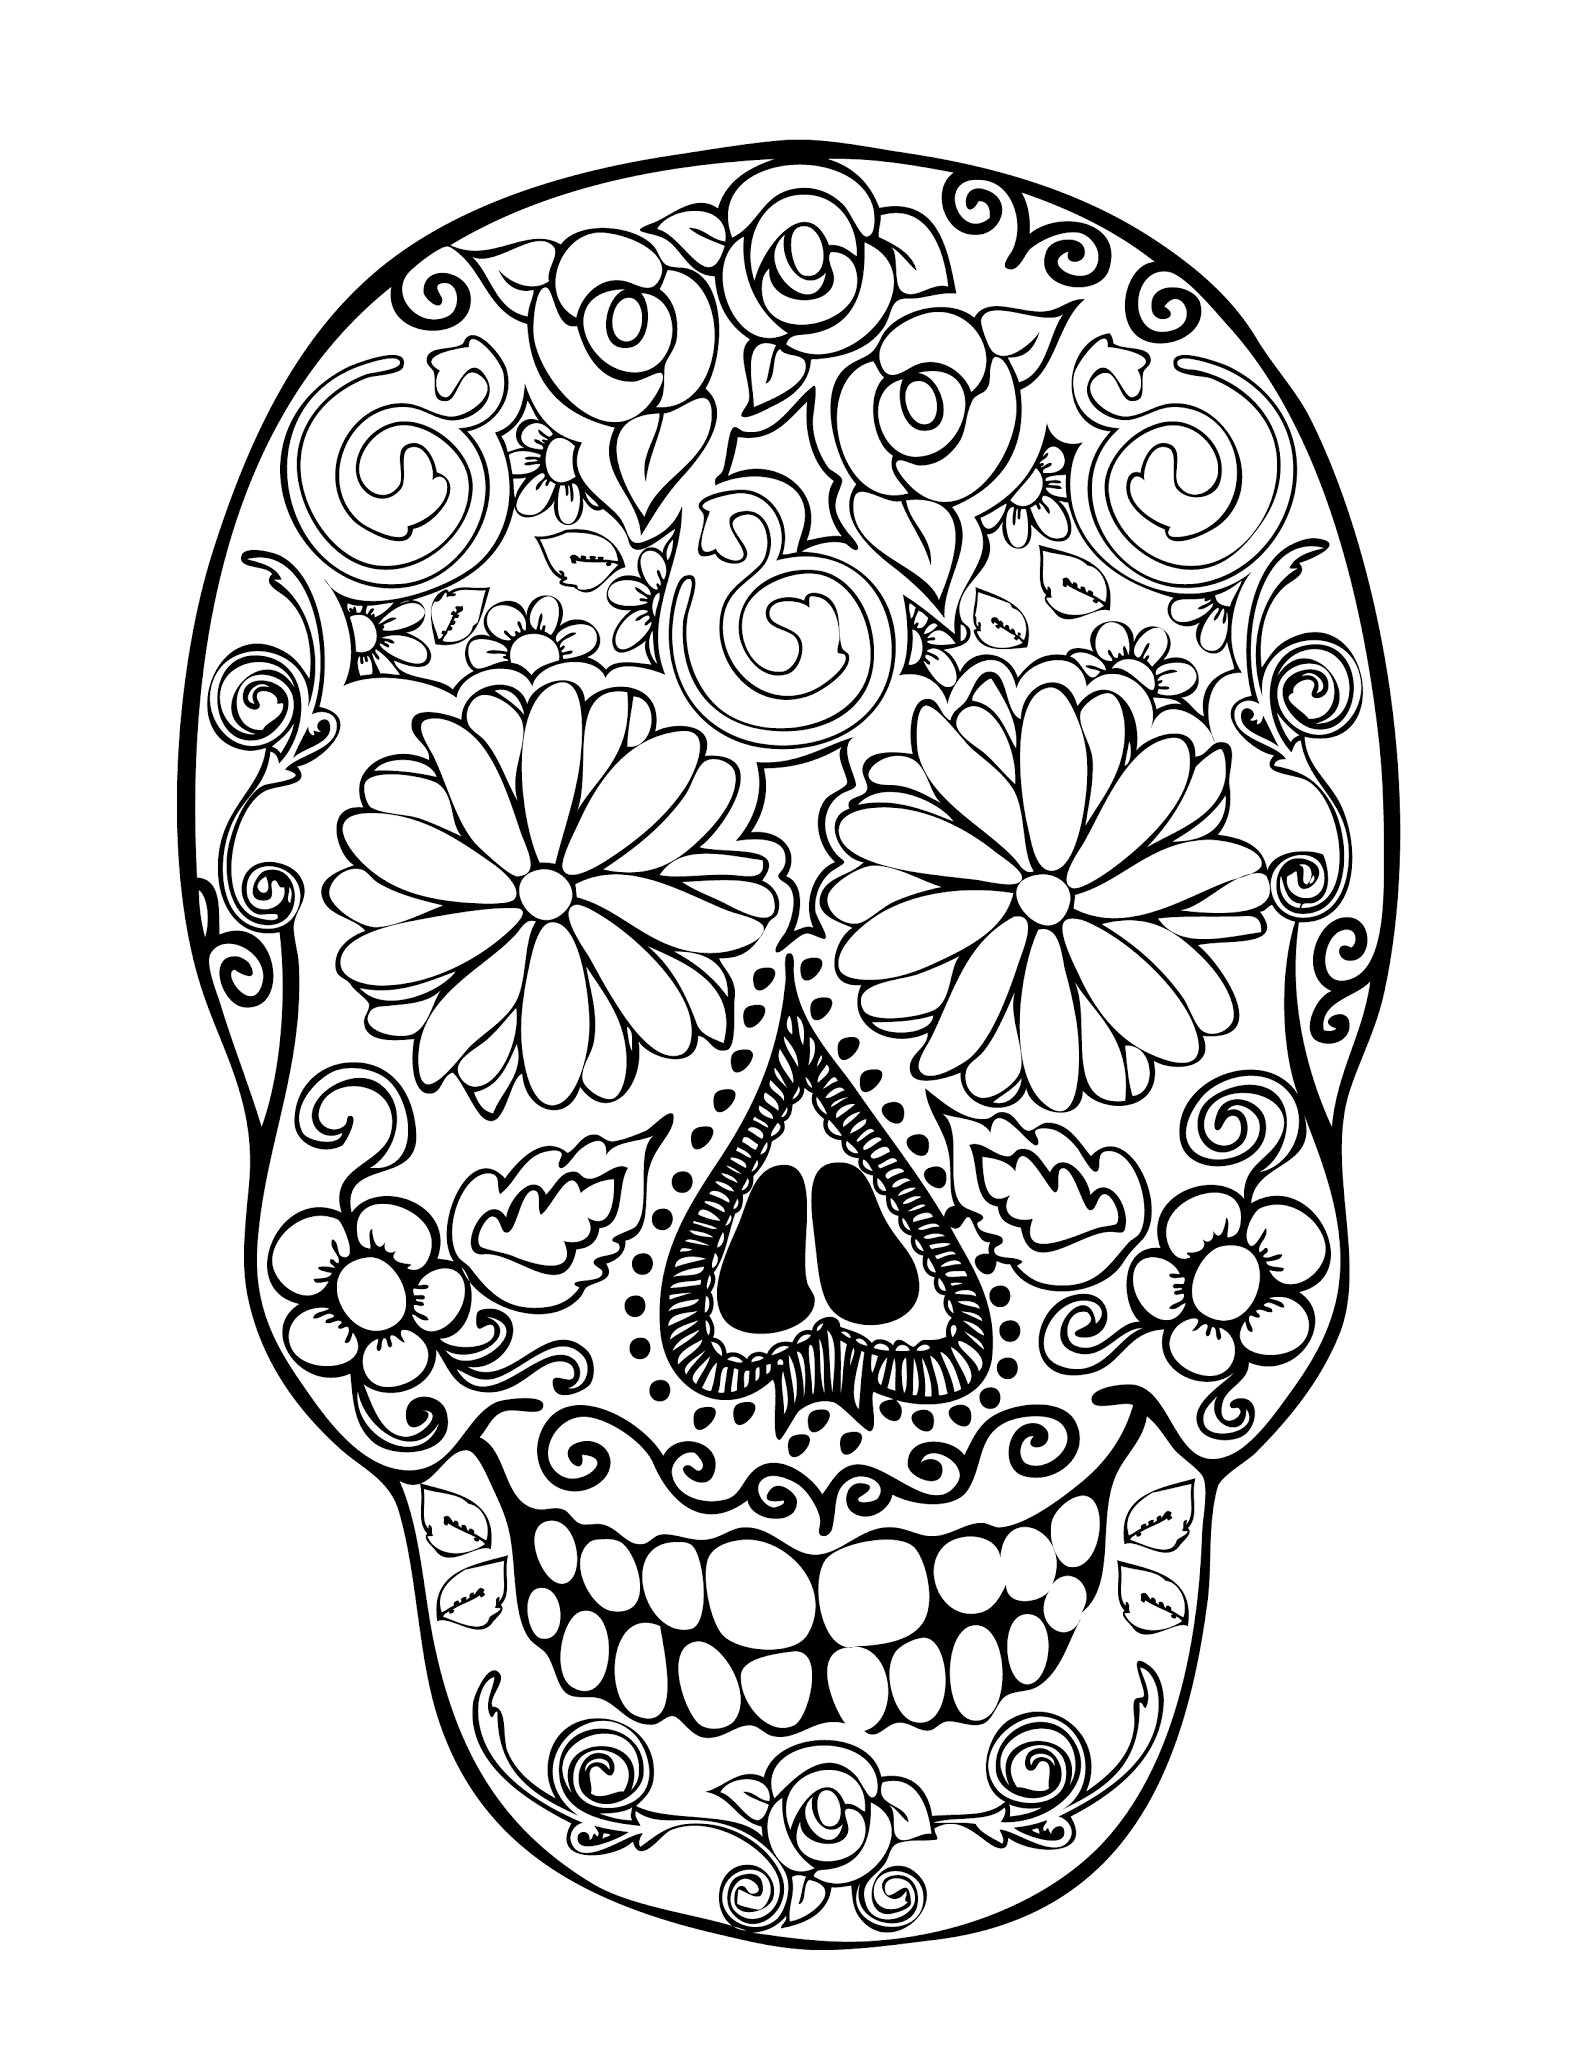 Printable Sugar Skulls Coloring Pages  28 skull coloring pages for kids Print Color Craft